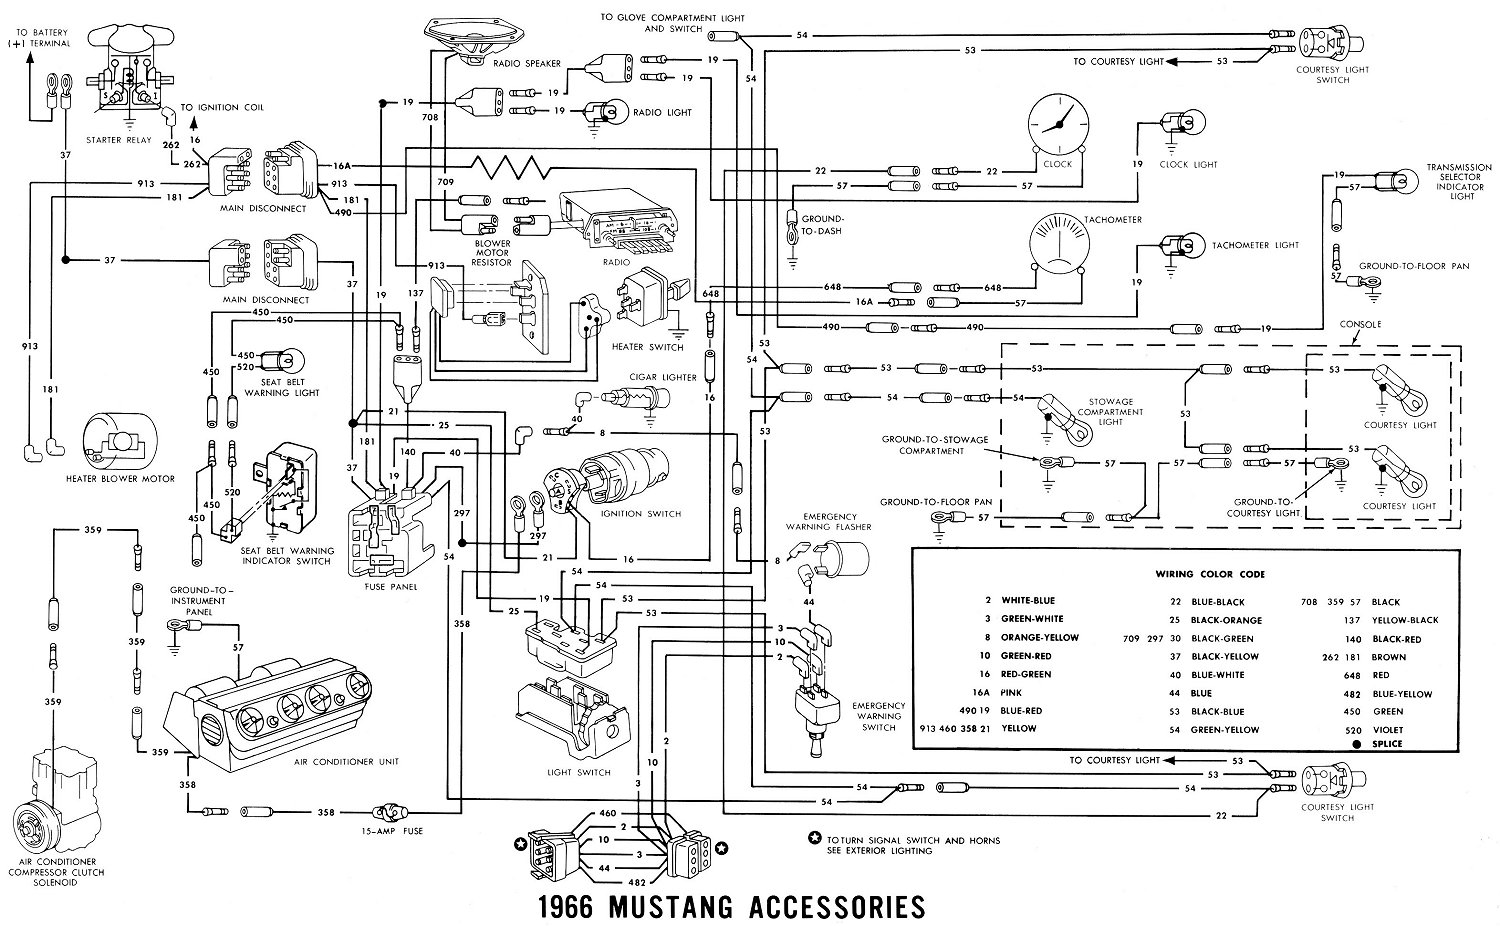 66acces1 1966 mustang wiring diagrams average joe restoration pac audio tr7 wiring diagram at couponss.co